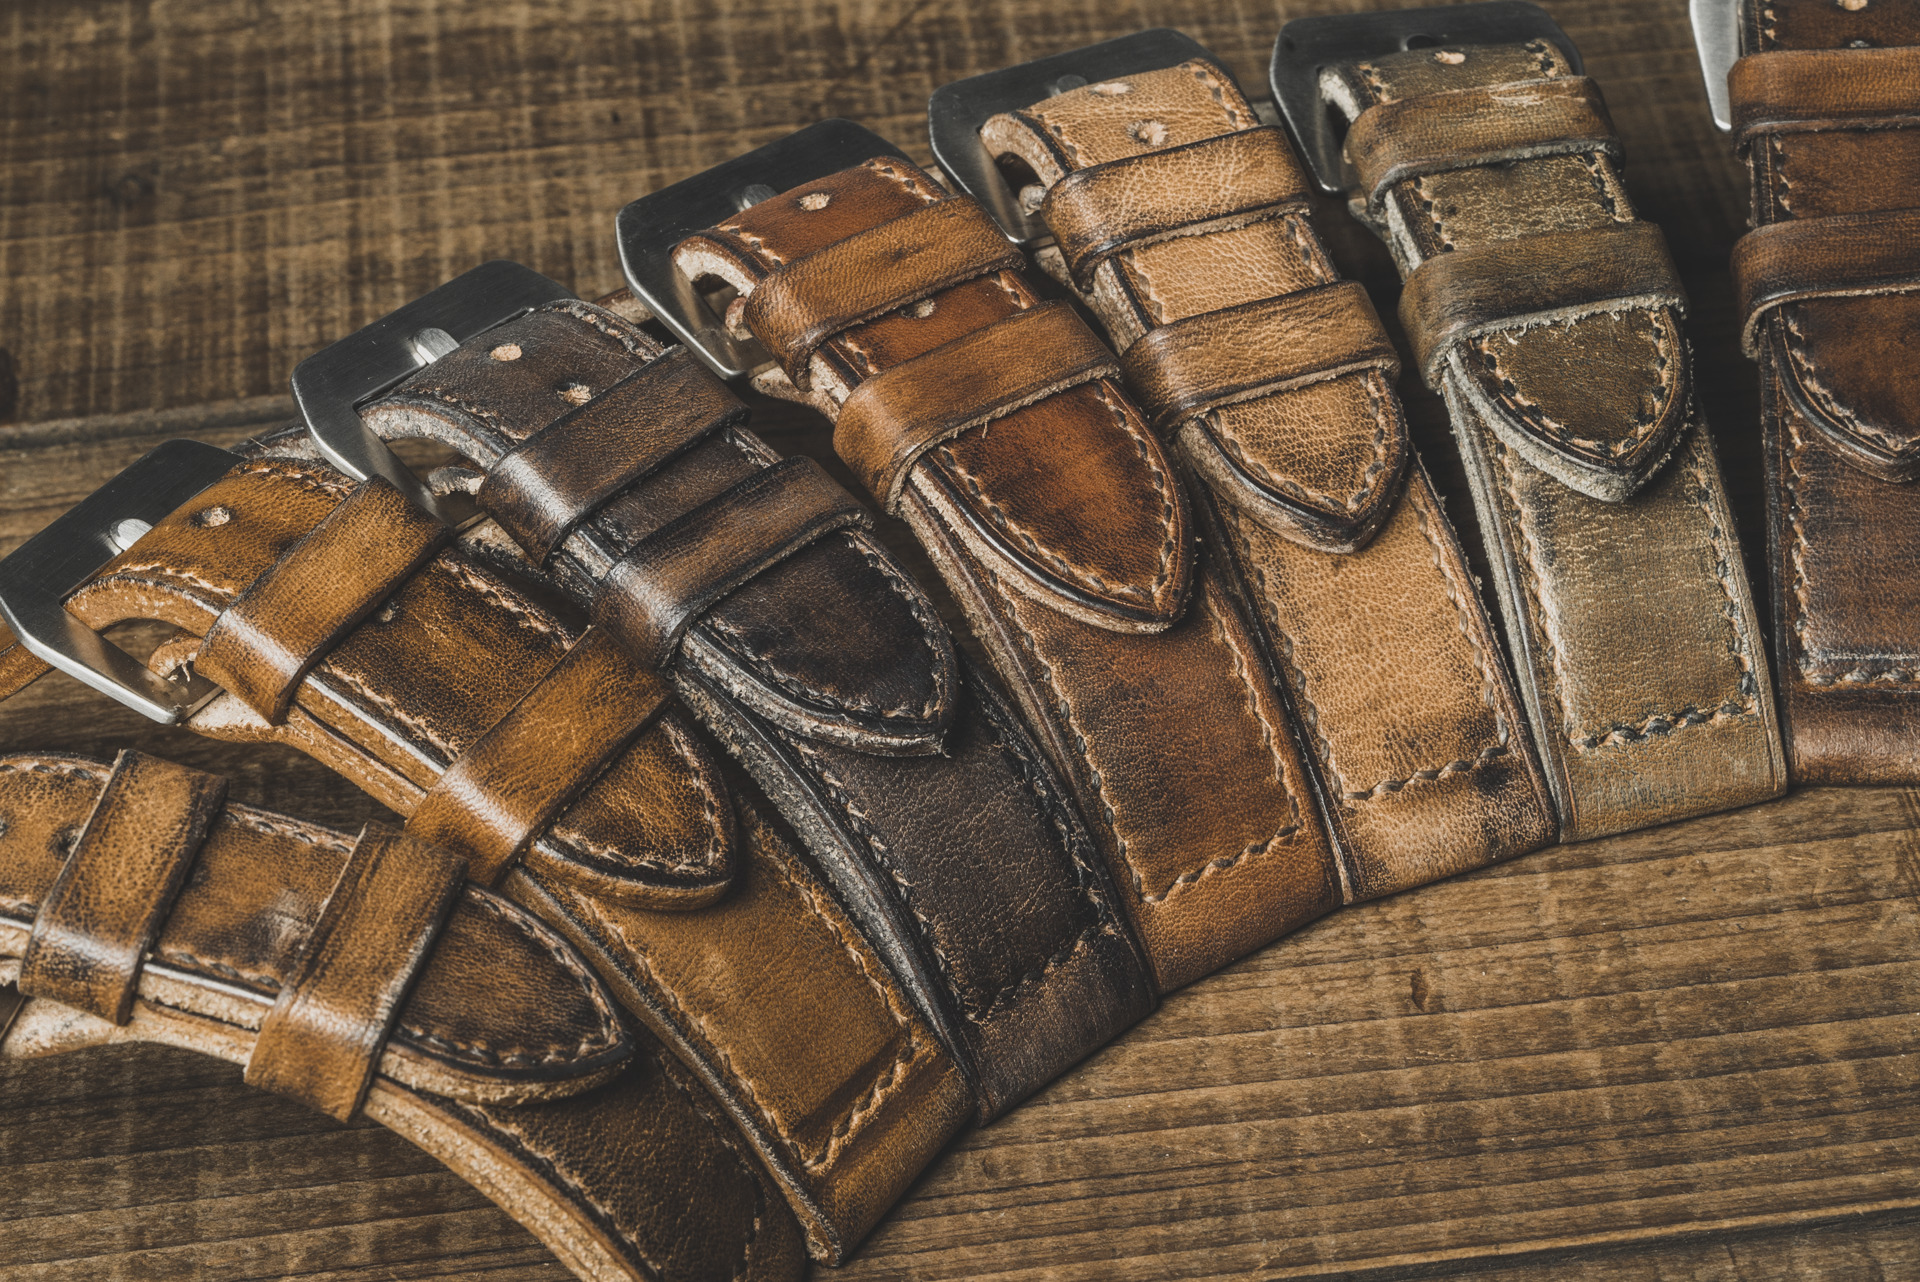 """LEGEND MAKER"" HAND-AGED LEATHER WATCH STRAPS"